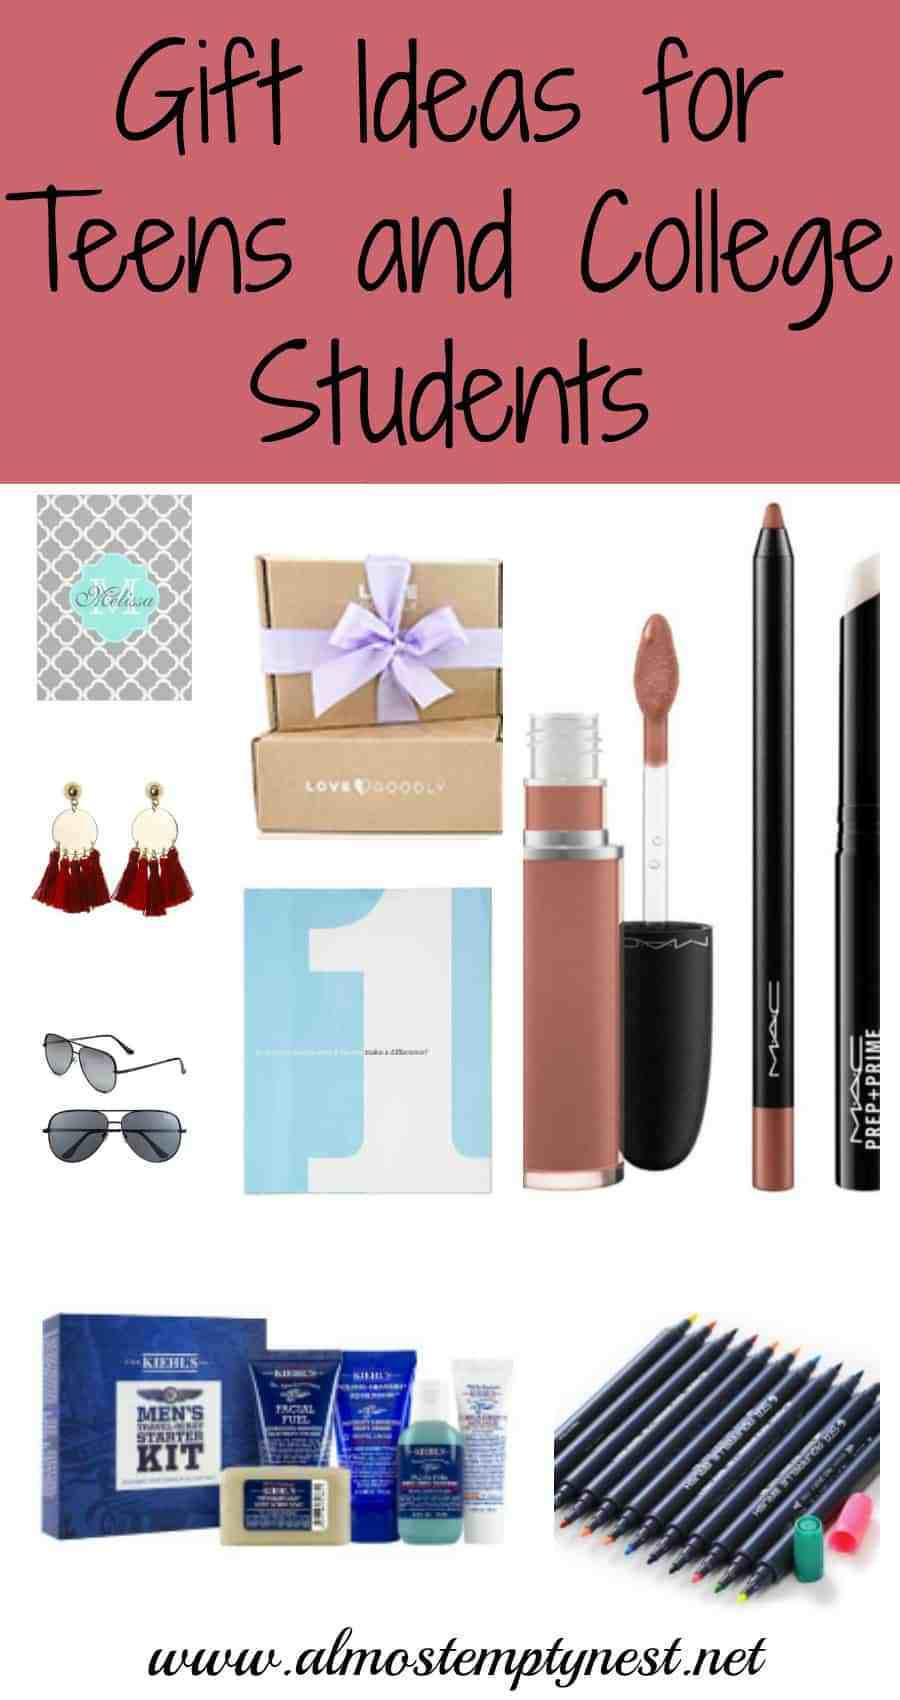 Best ideas about Gift Ideas For College Students . Save or Pin Gift Ideas for Teens and College Students Almost Empty Nest Now.